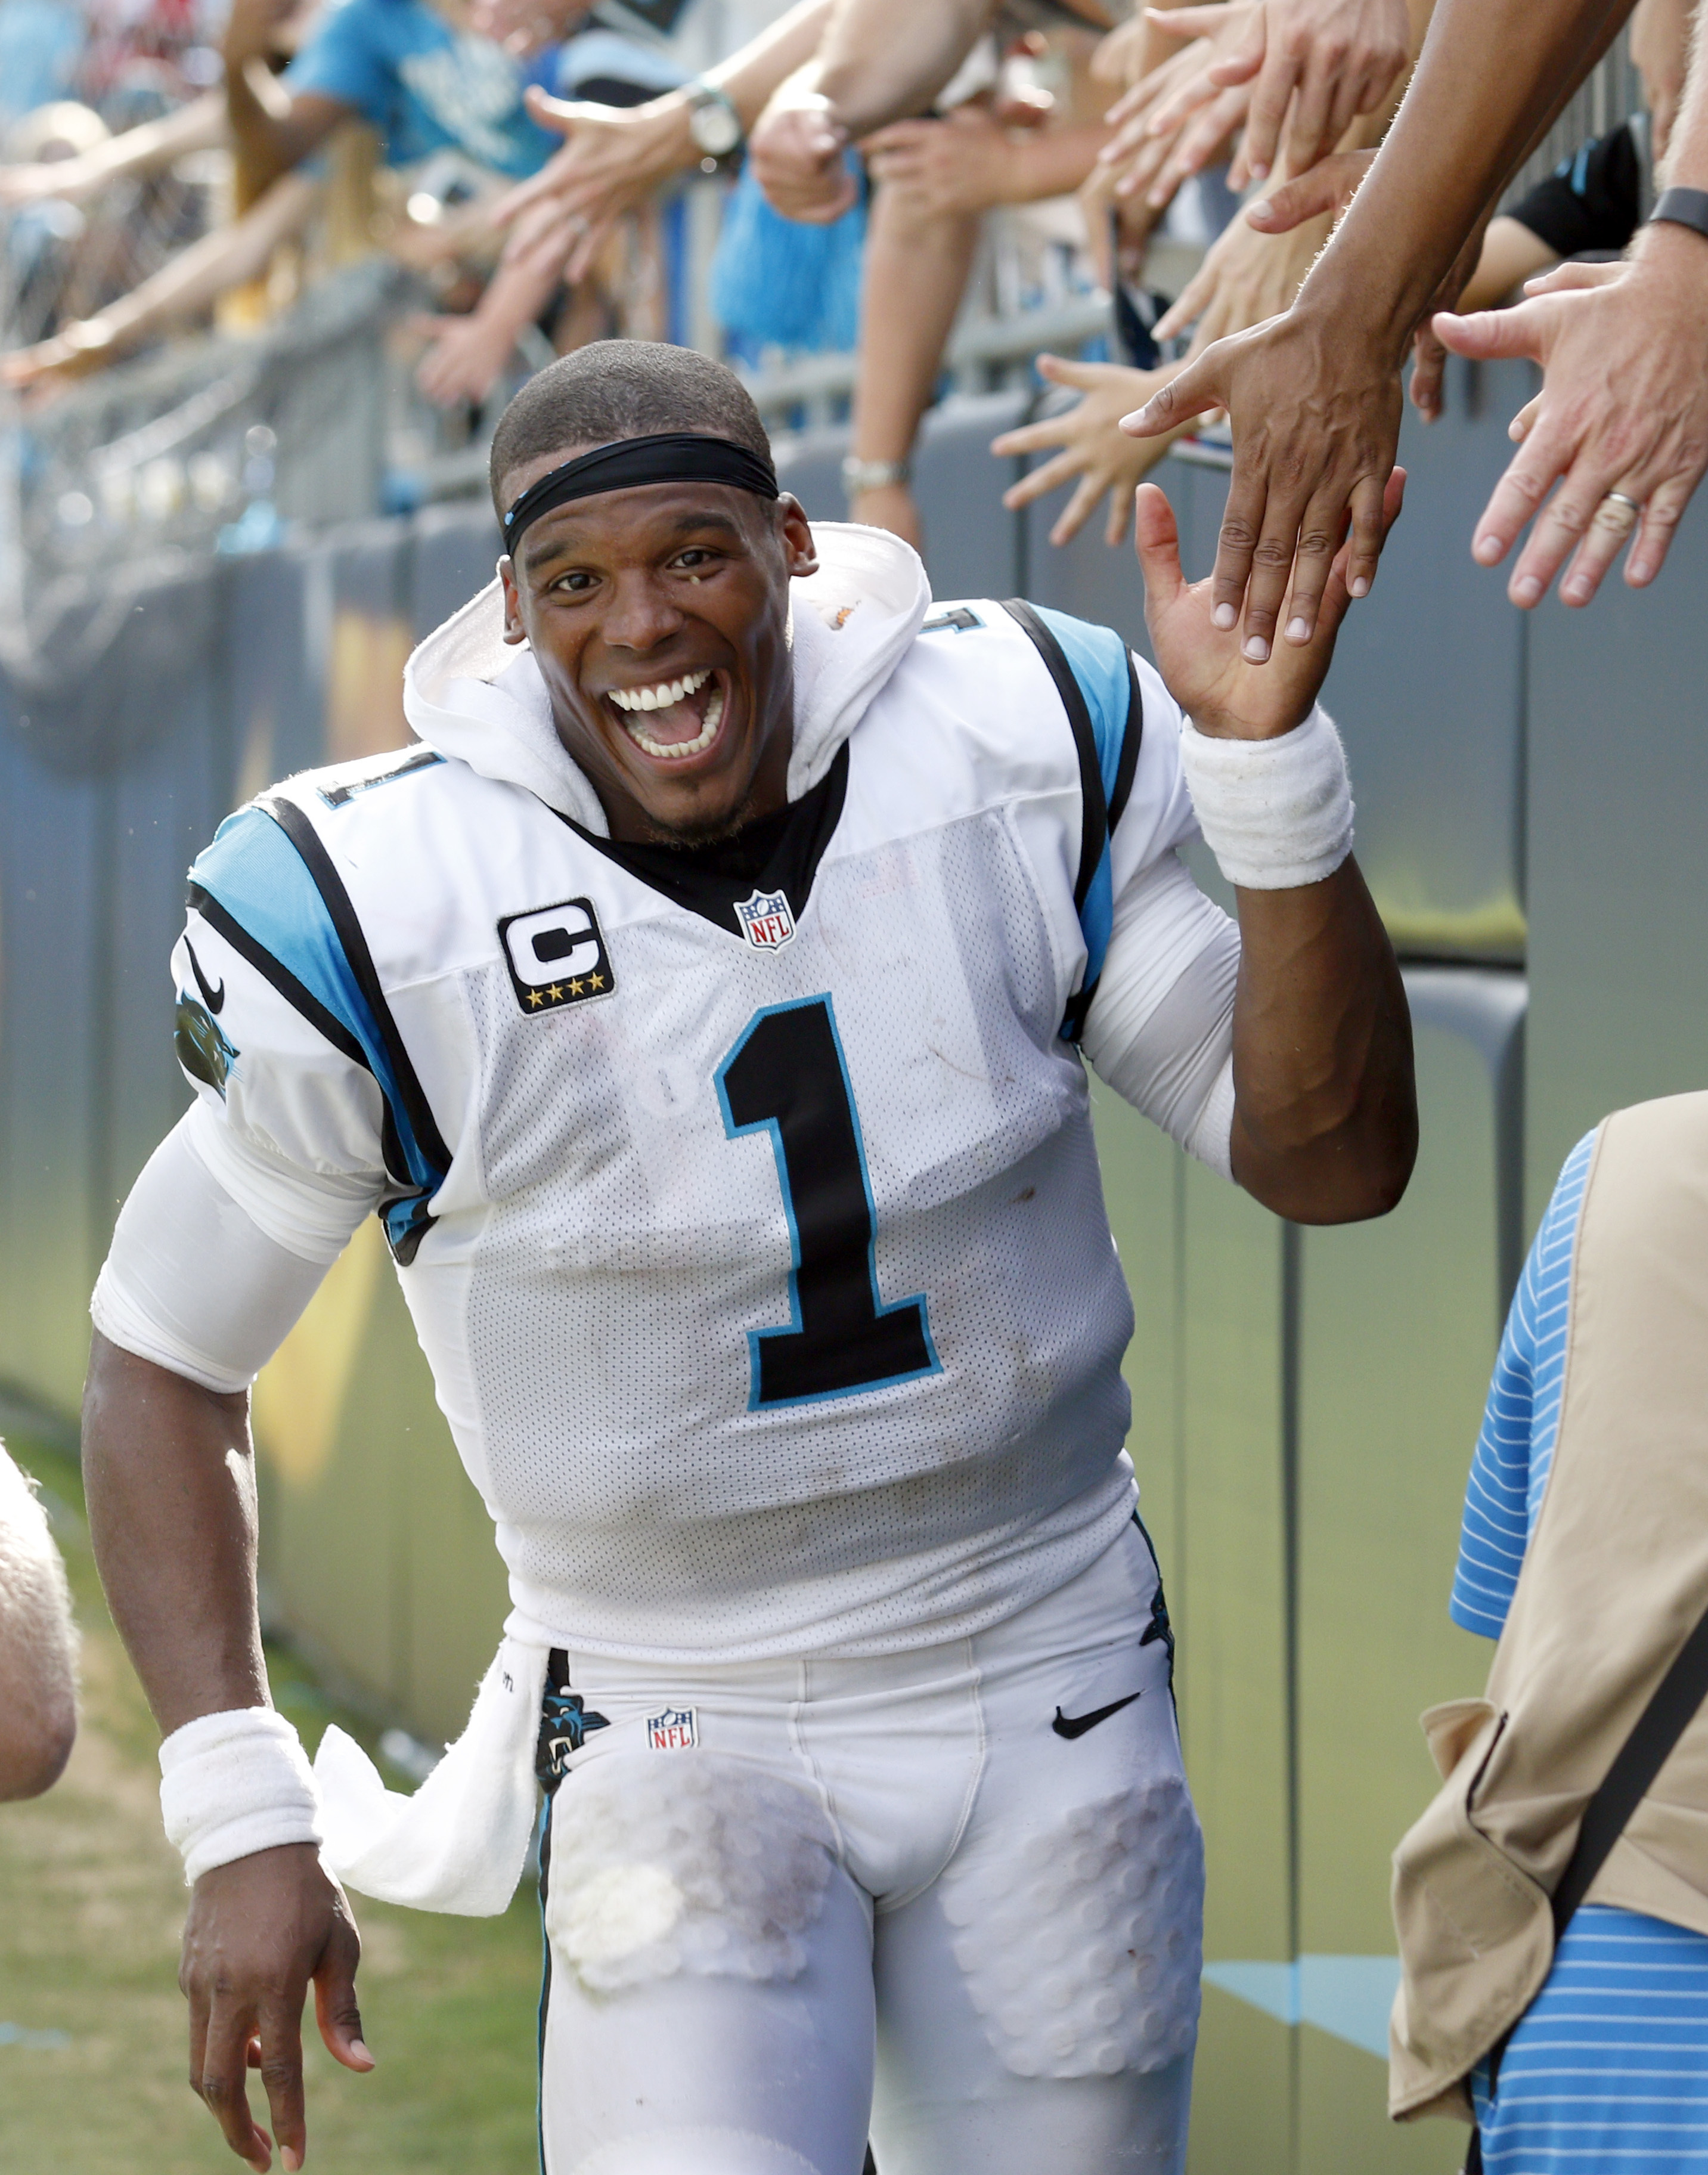 Carolina Panthers' Cam Newton (1) celebrates after an NFL football game San Francisco 49ers in Charlotte, N.C., Sunday, Sept. 18, 2016. The Panthers won 46-27. (AP Photo/Bob Leverone)